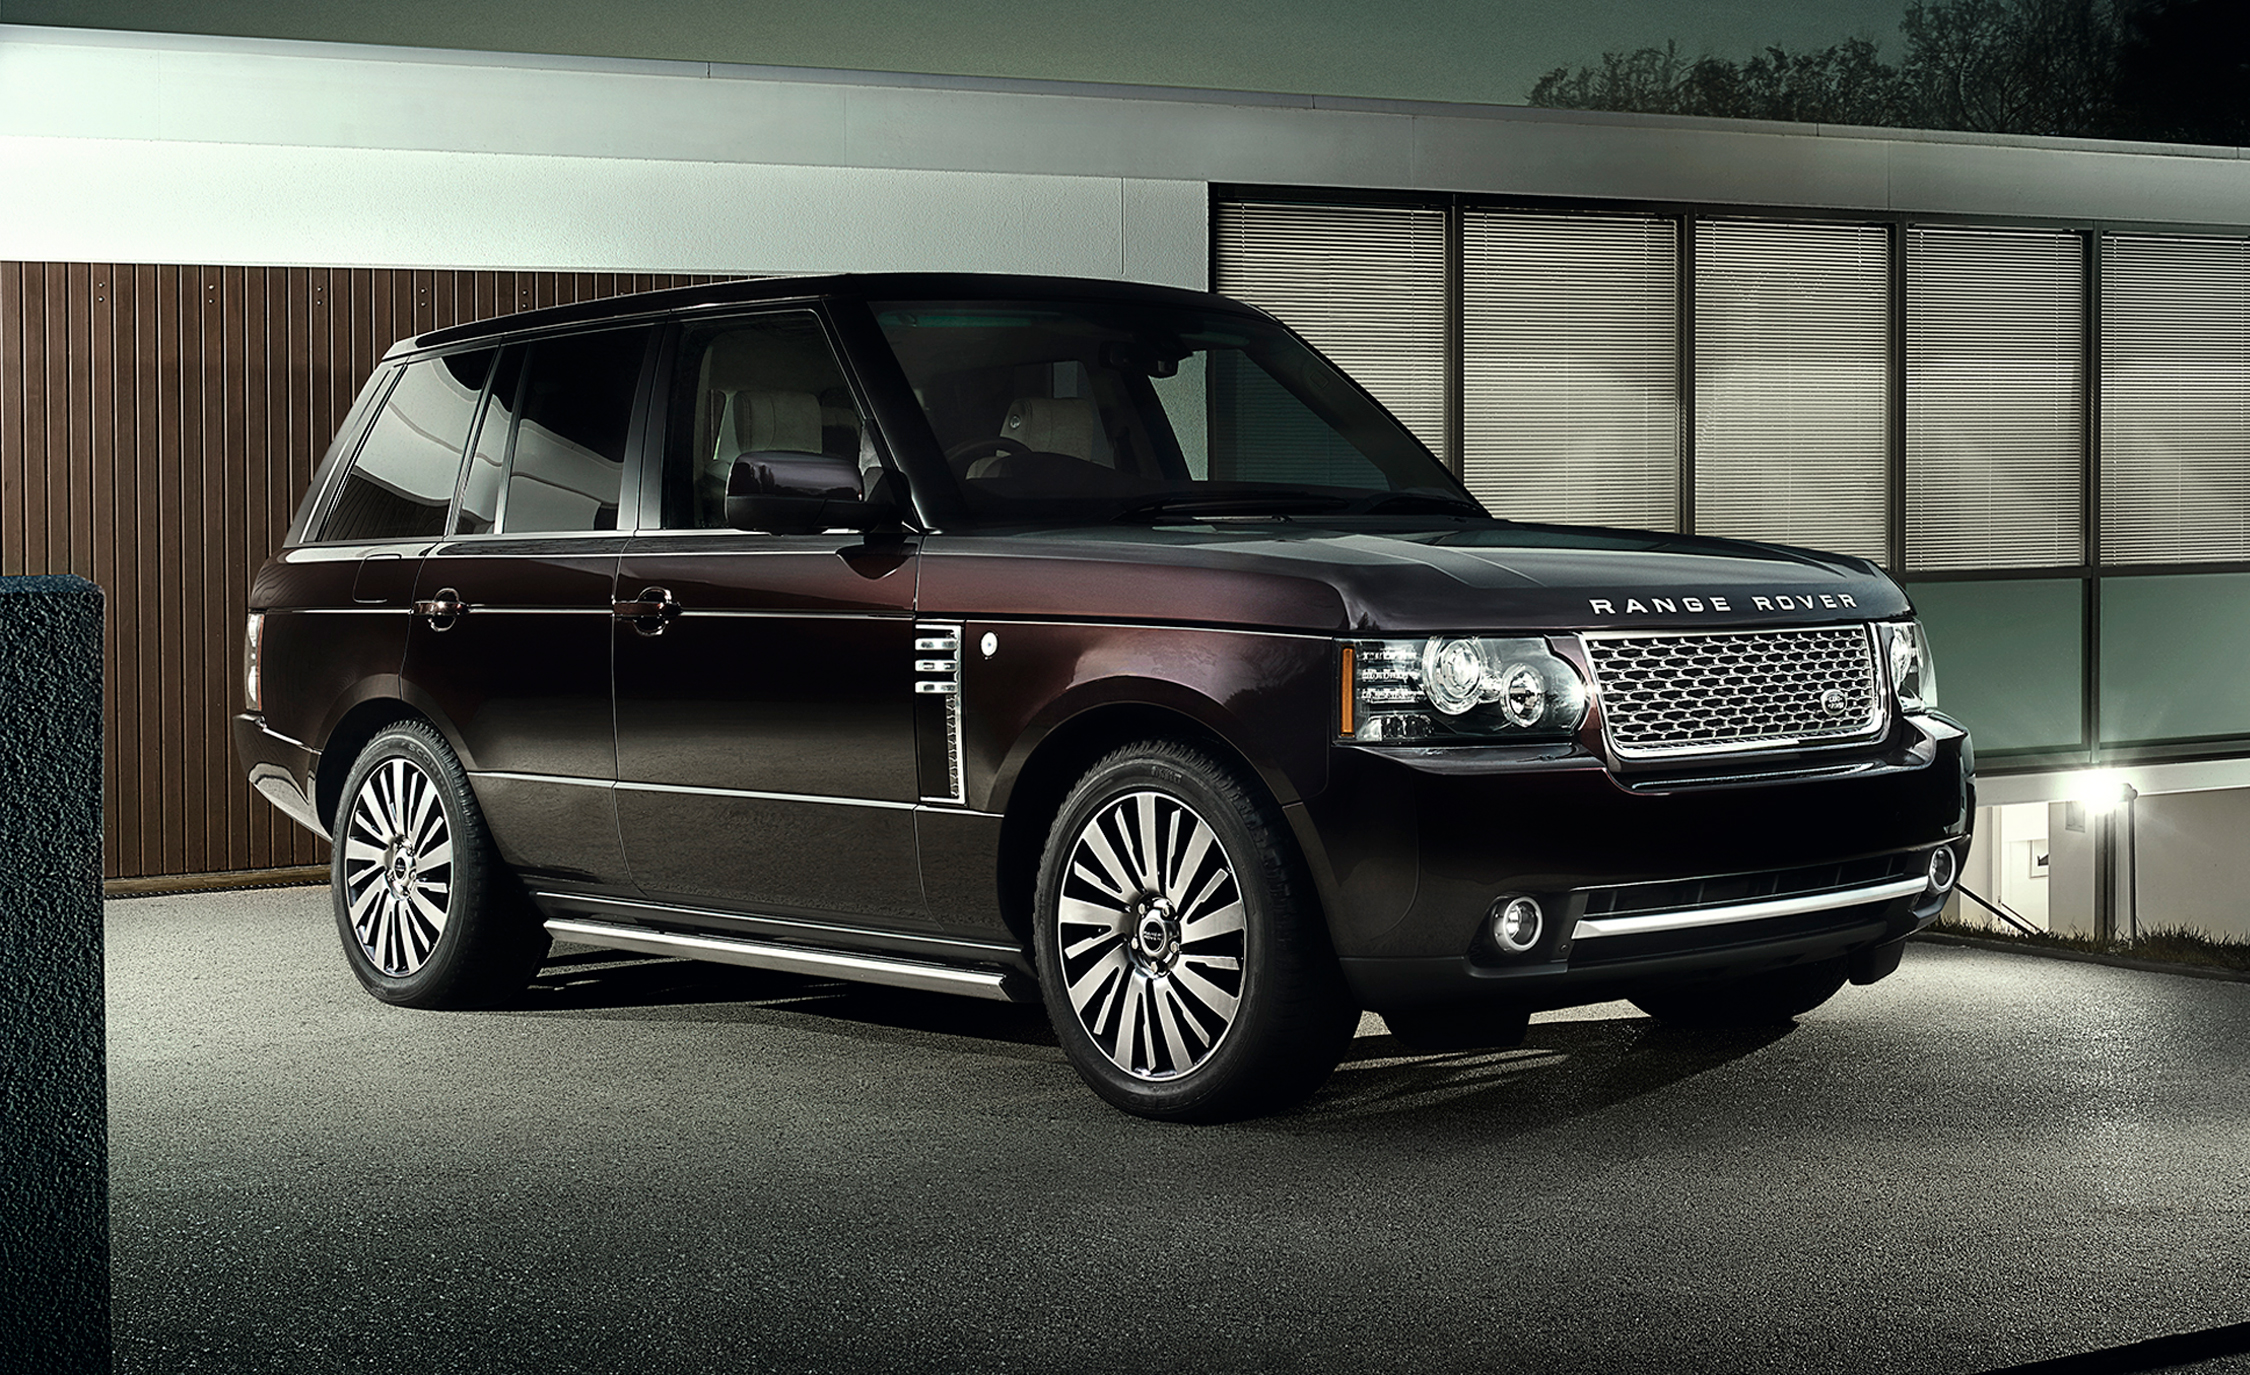 Land Rover Range Rover Autobiography Ultimate Edition Free Download Image